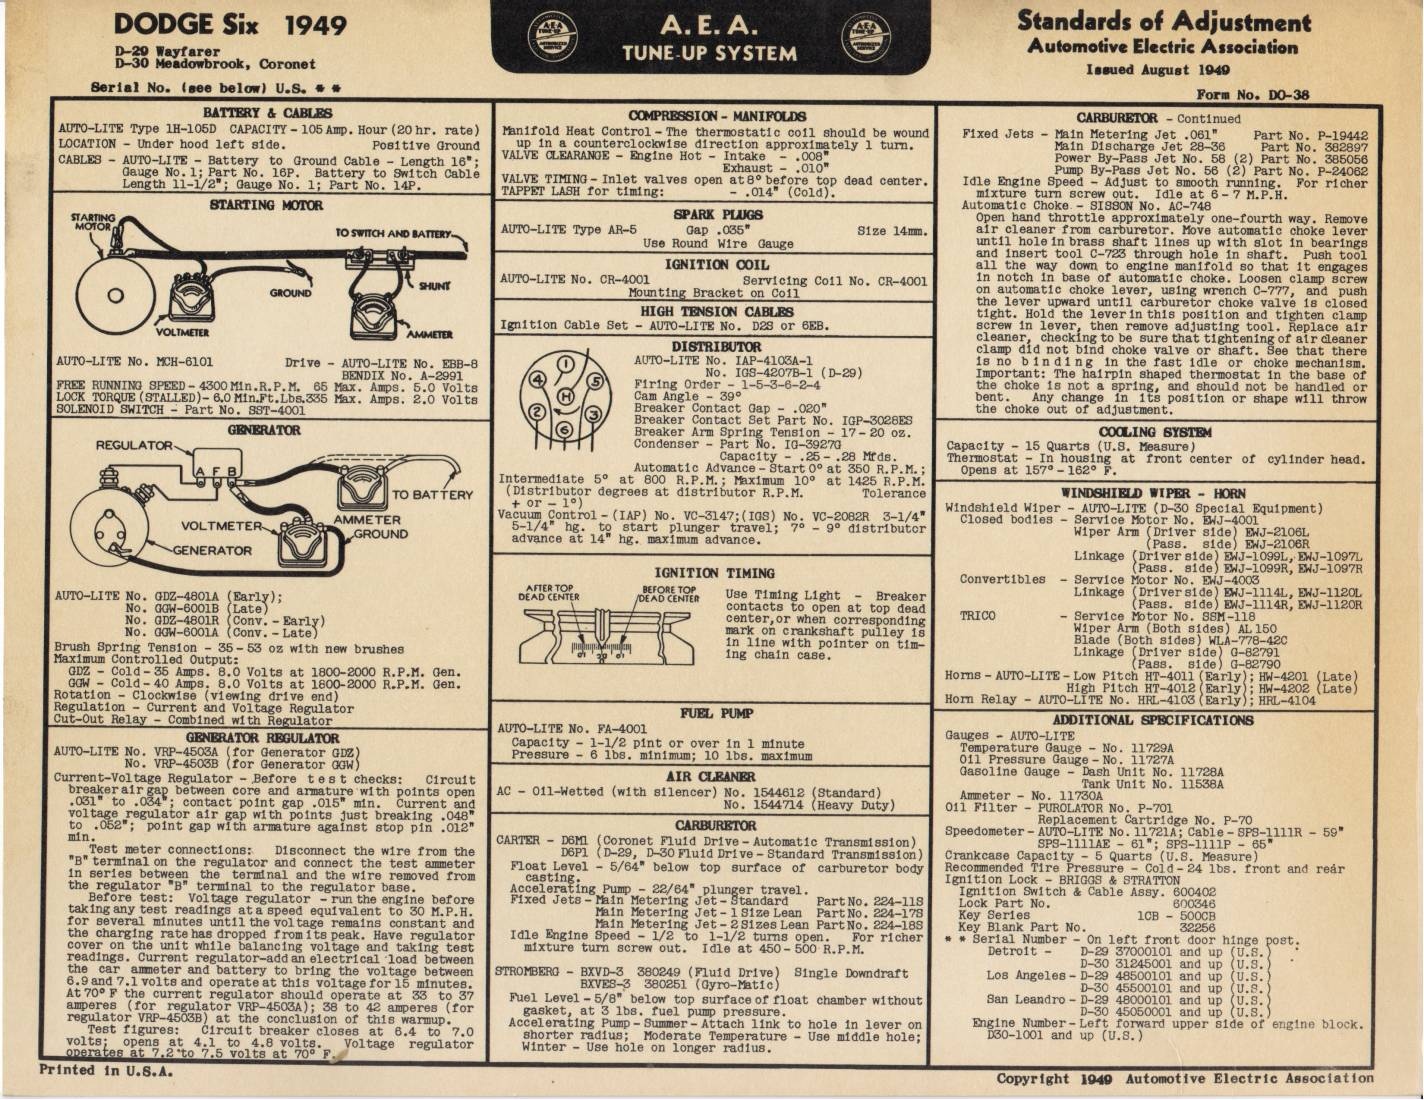 wayfarer wiring diagram wiring libraryaea tuneup card for the 1949 dodge